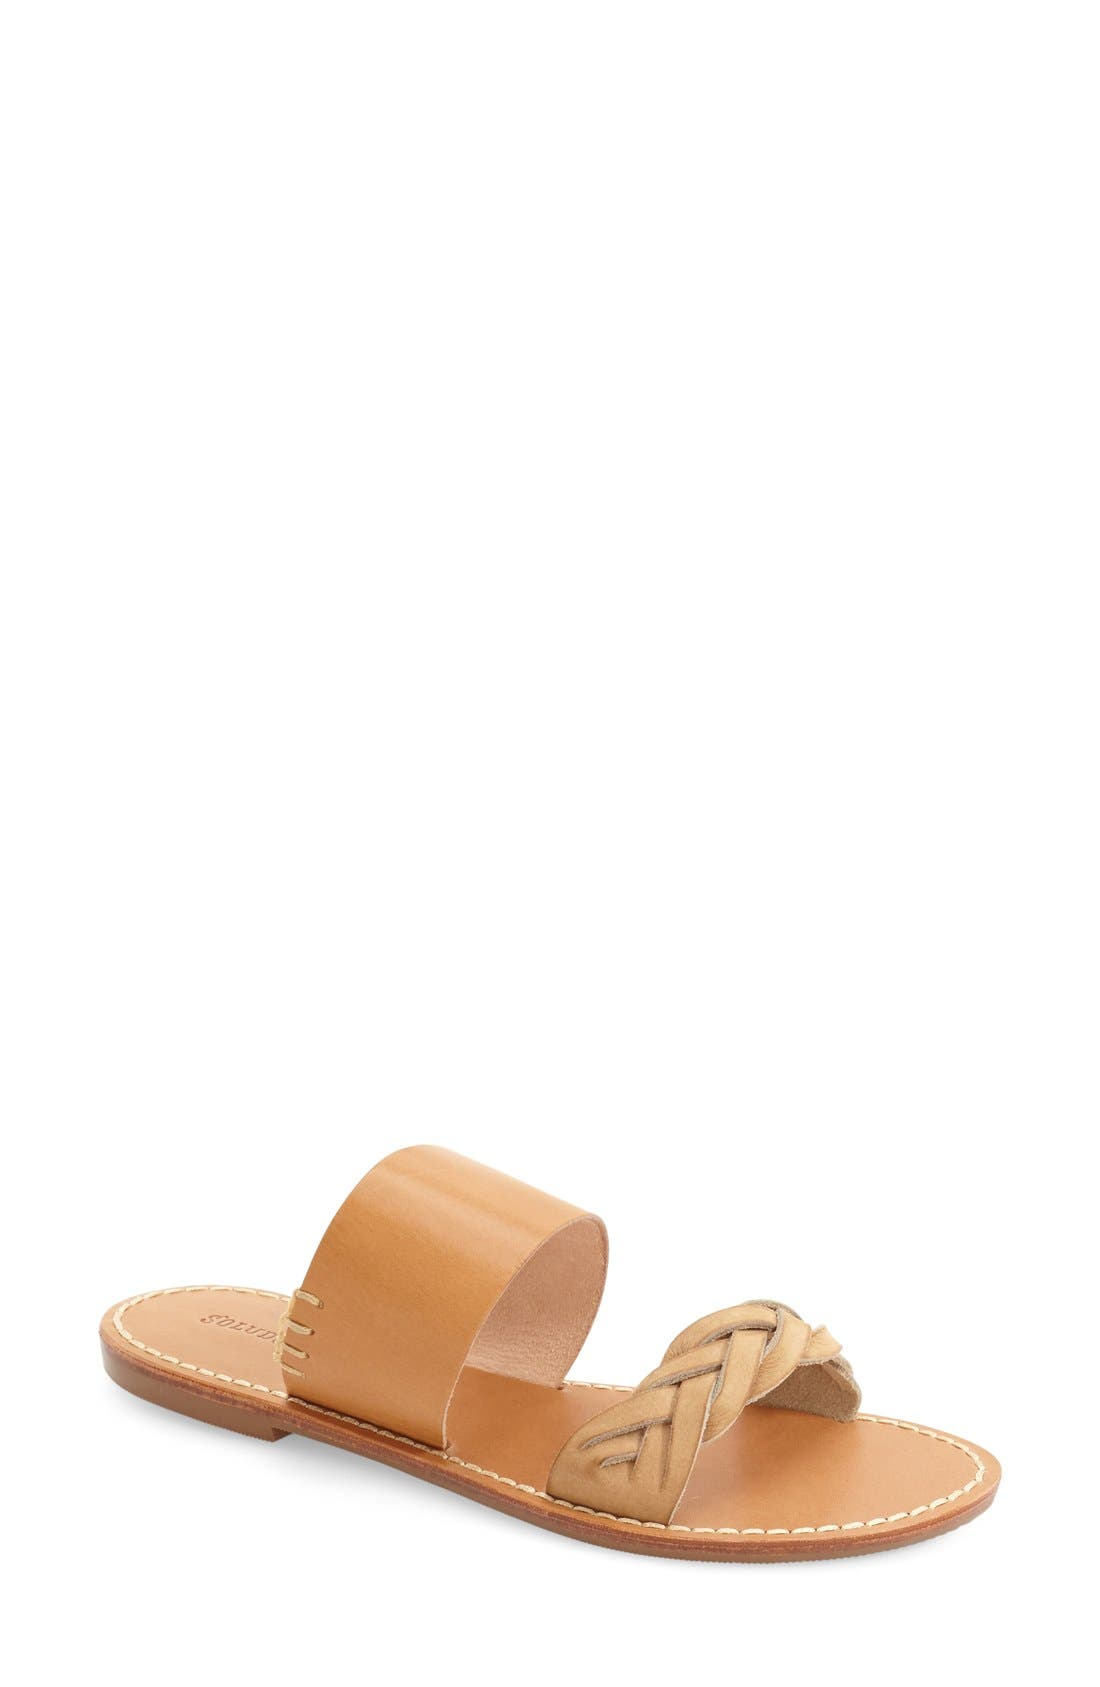 SOLUDOS, Slide Sandal, Main thumbnail 1, color, ACORN/ BROWN LEATHER